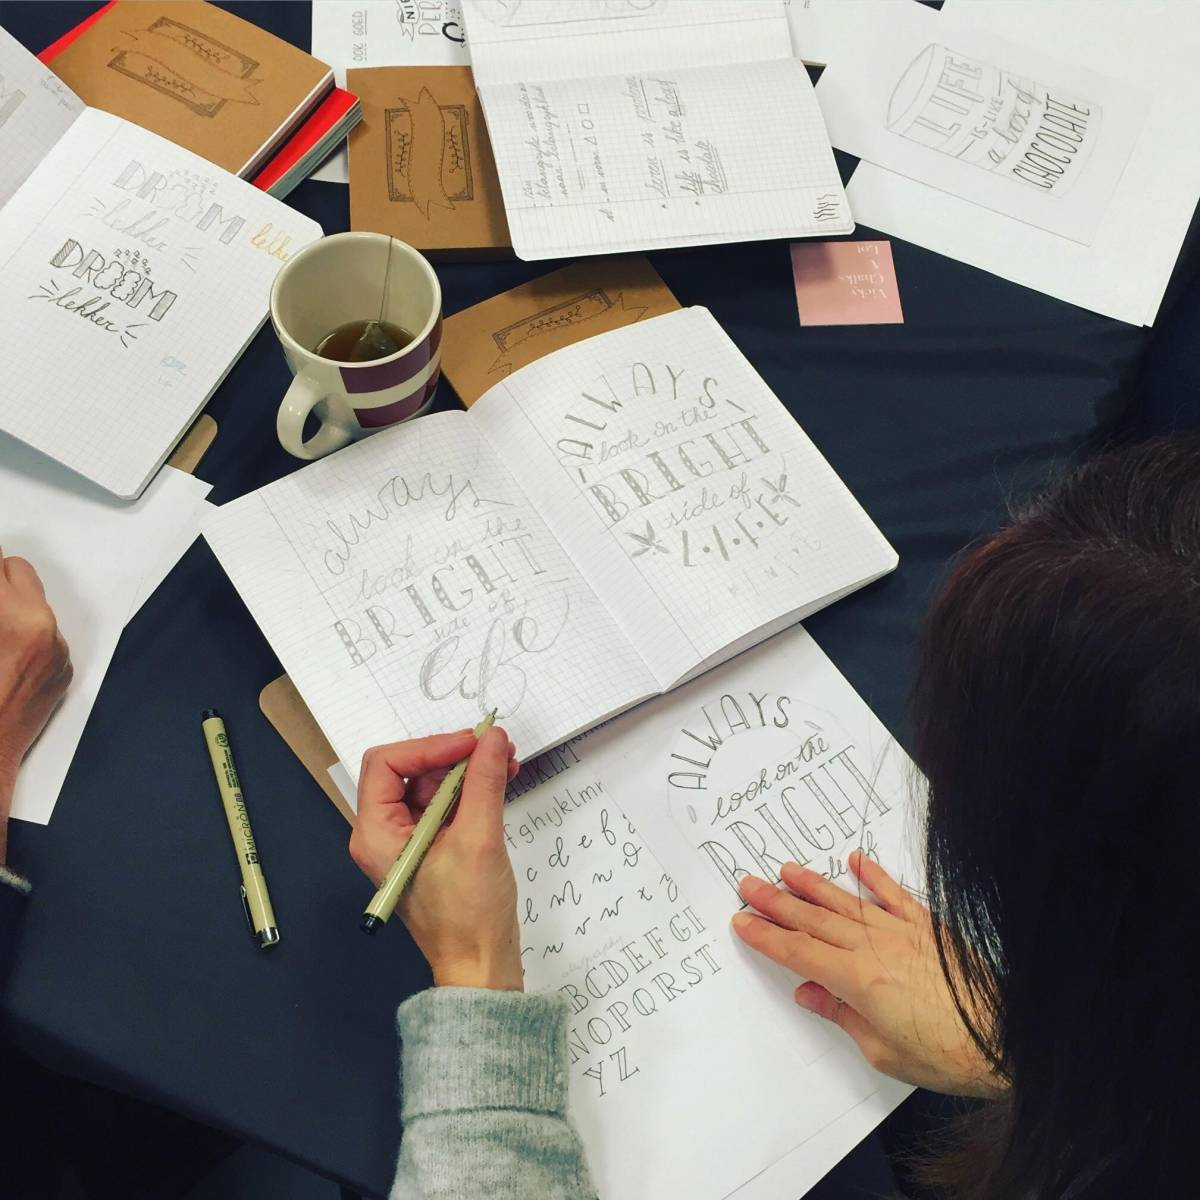 Vicky Chalks A Lot - Workshop Hand lettering - Vrijgezellen - House of Events - 11